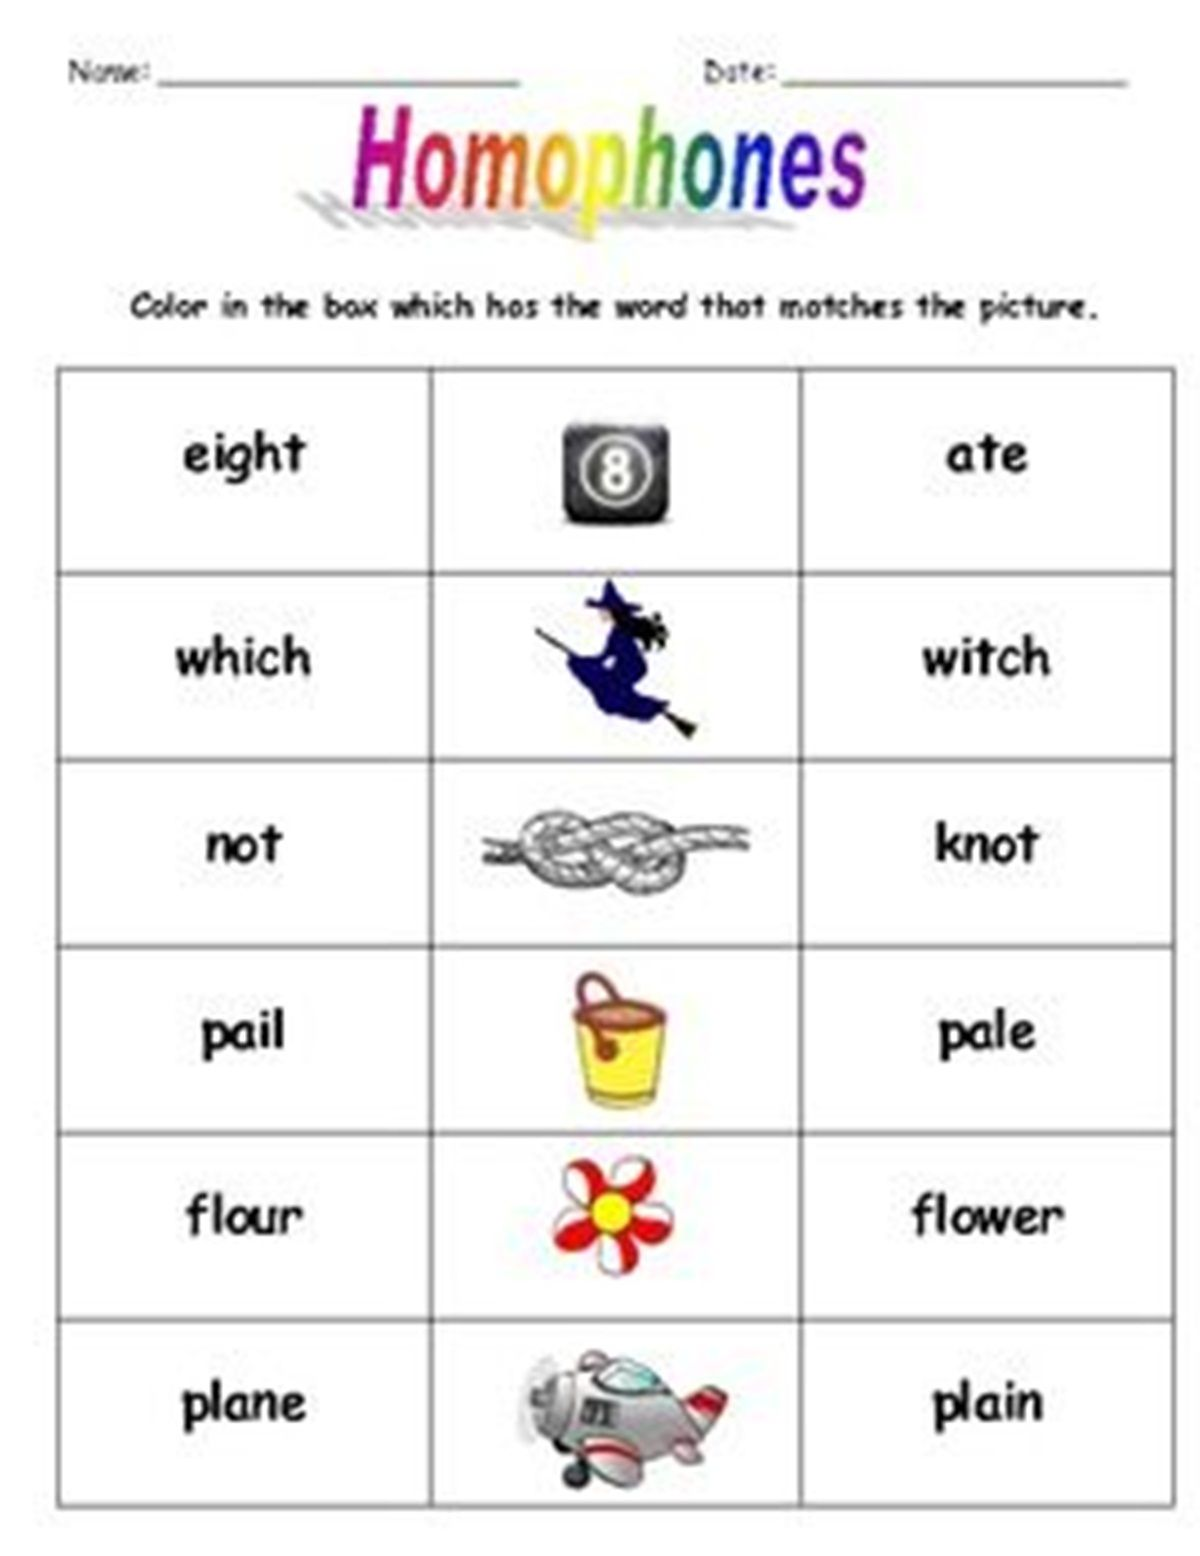 Homophones Words In English